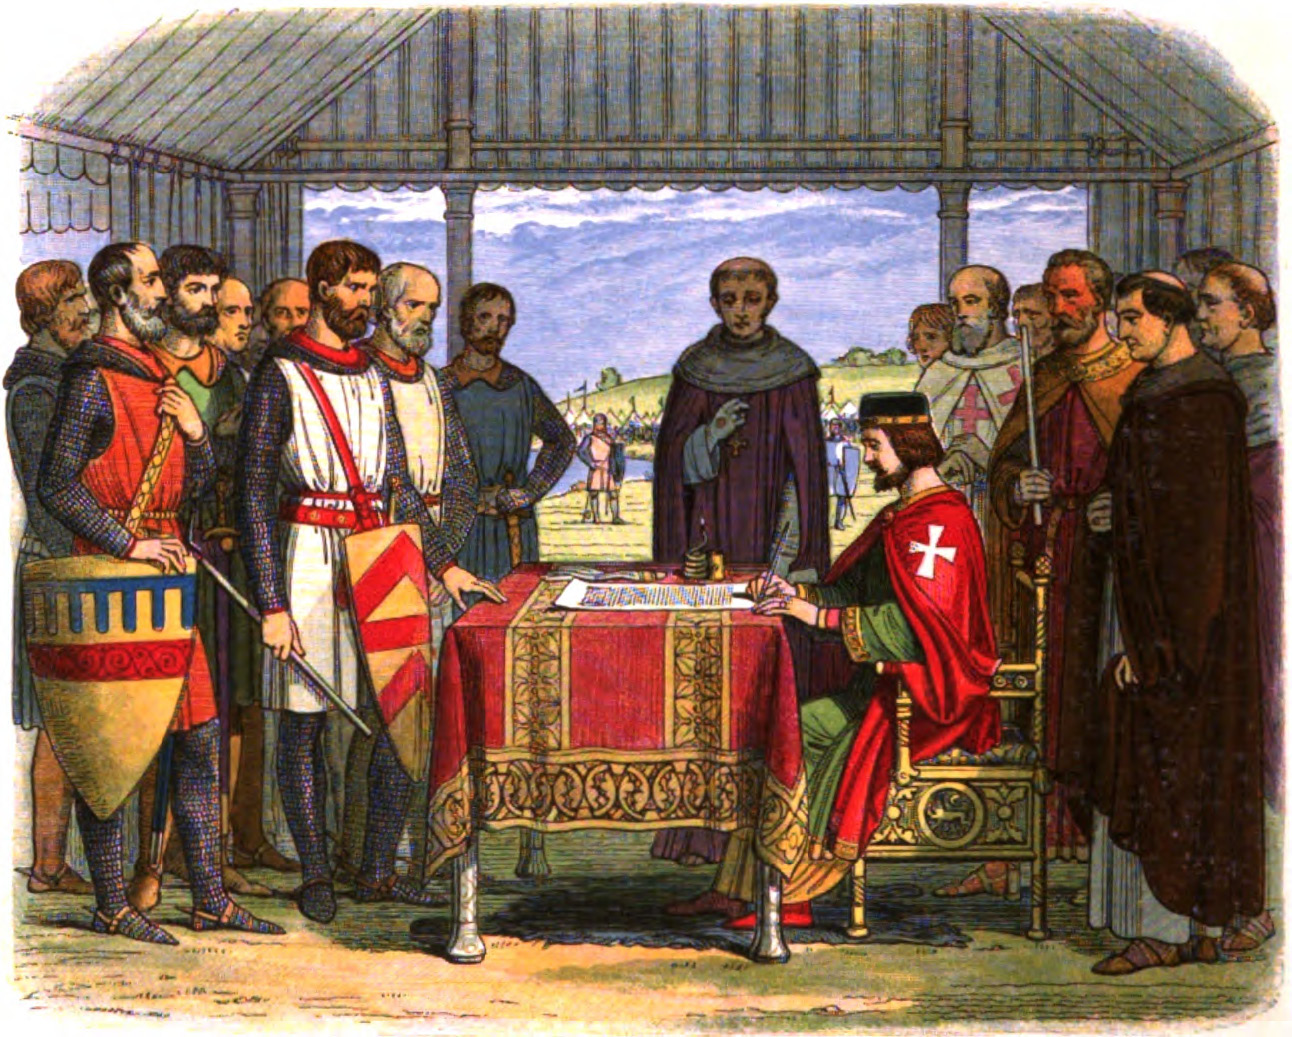 David Carpenter on the Magna Carta